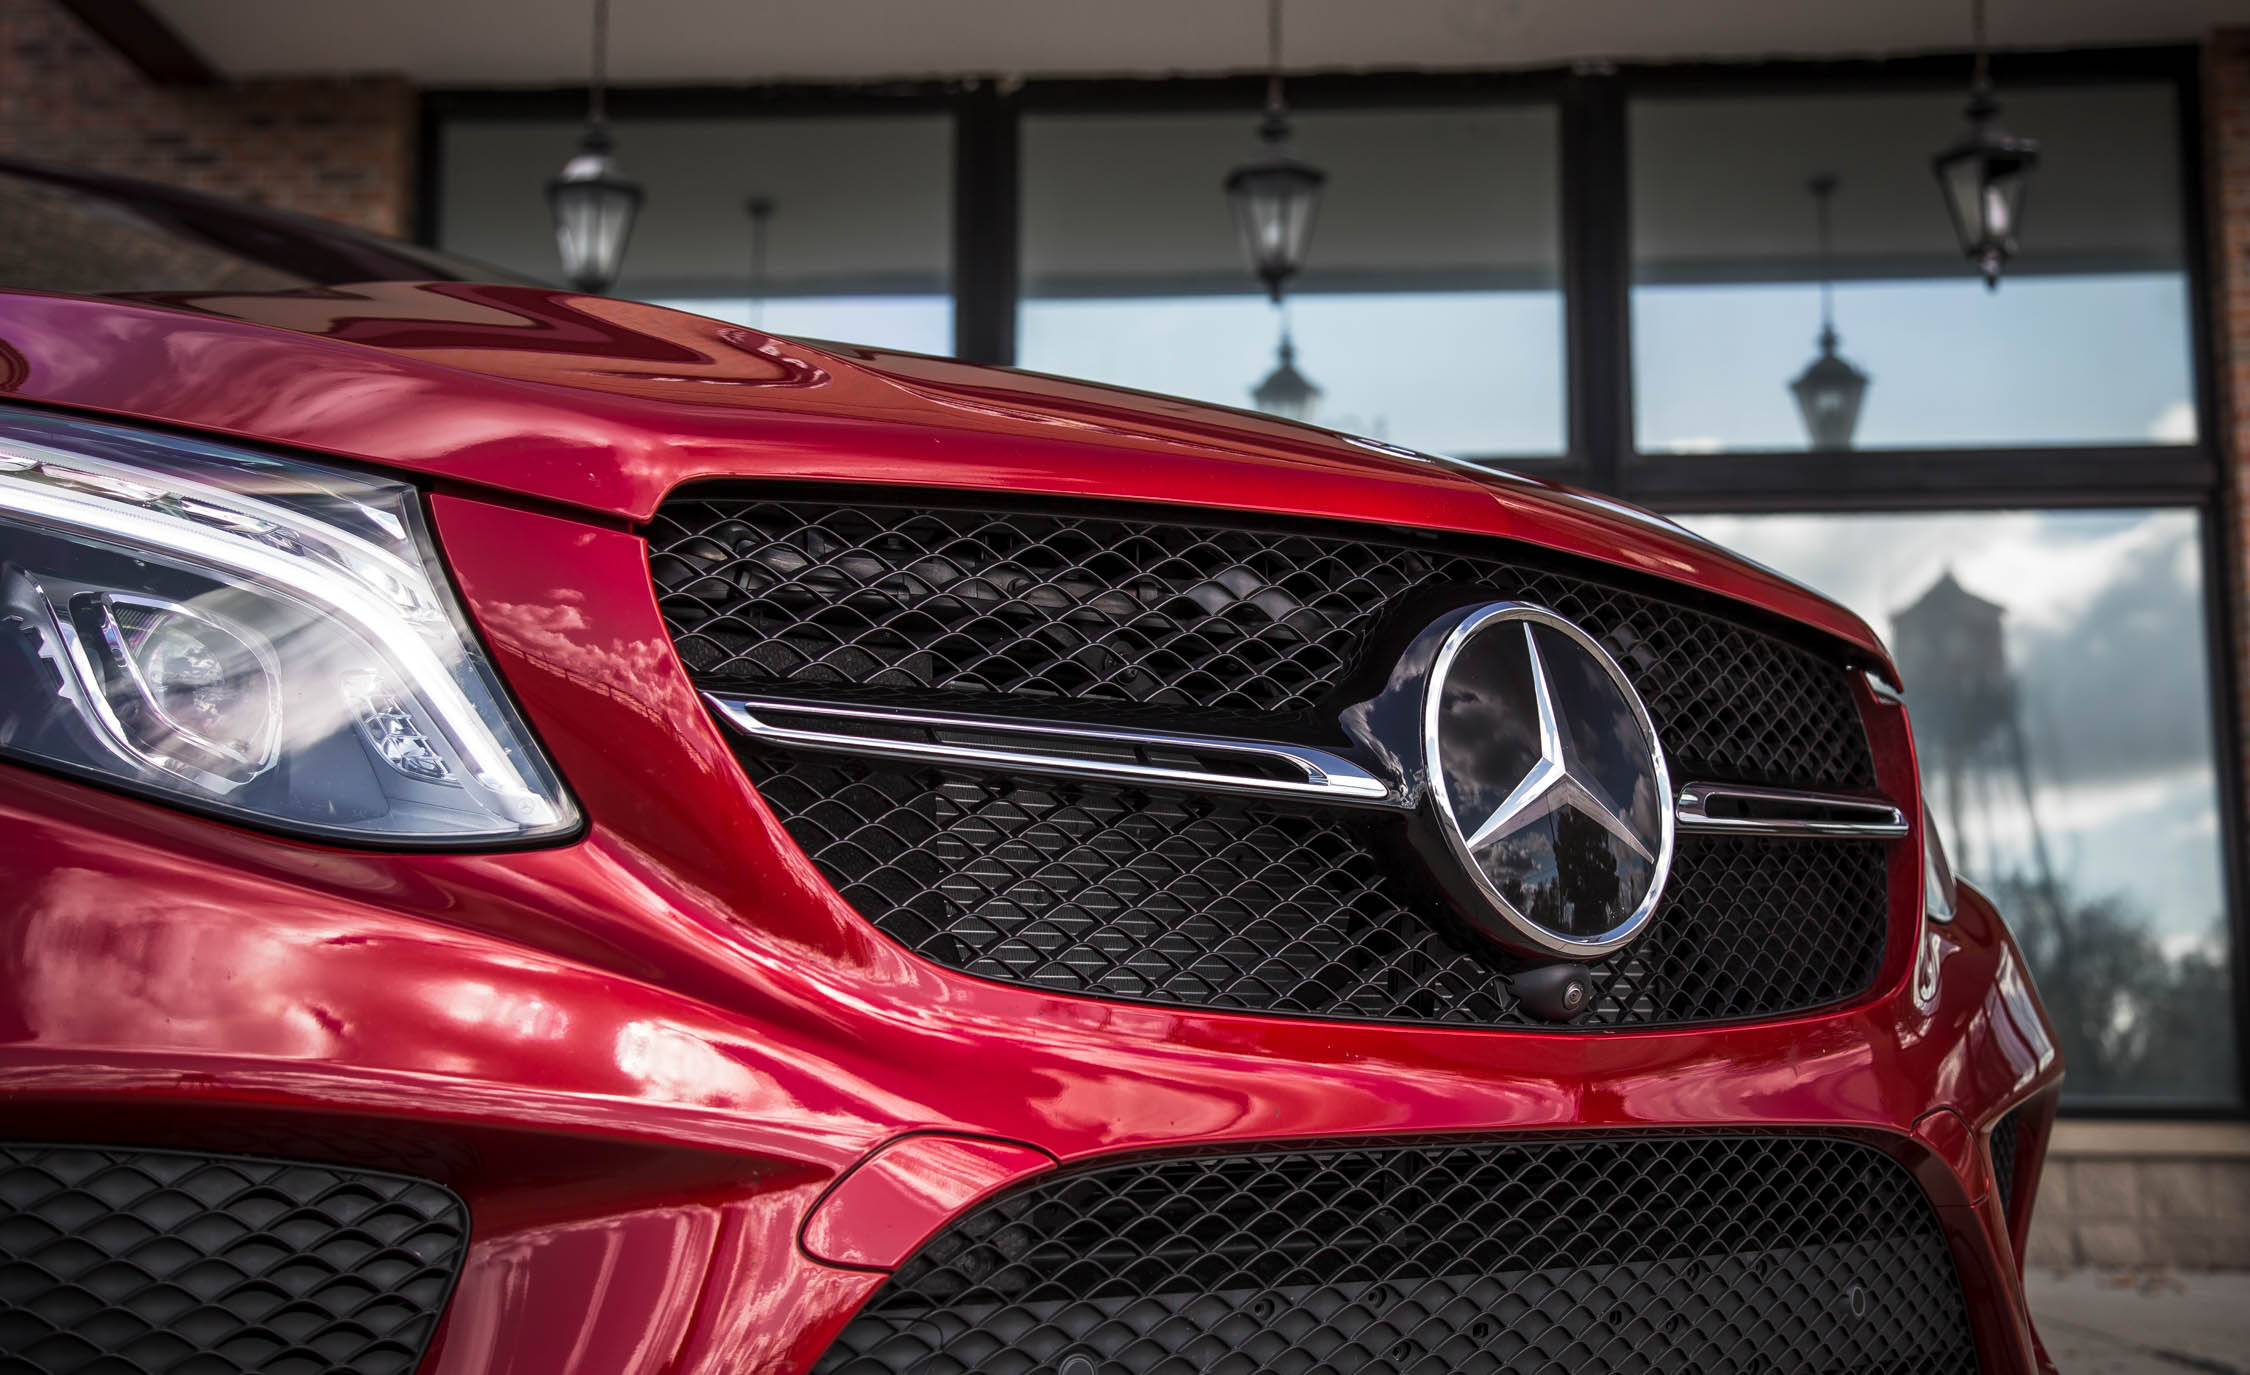 2016 Mercedes-Benz GLE450 AMG Coupe Exterior Grille